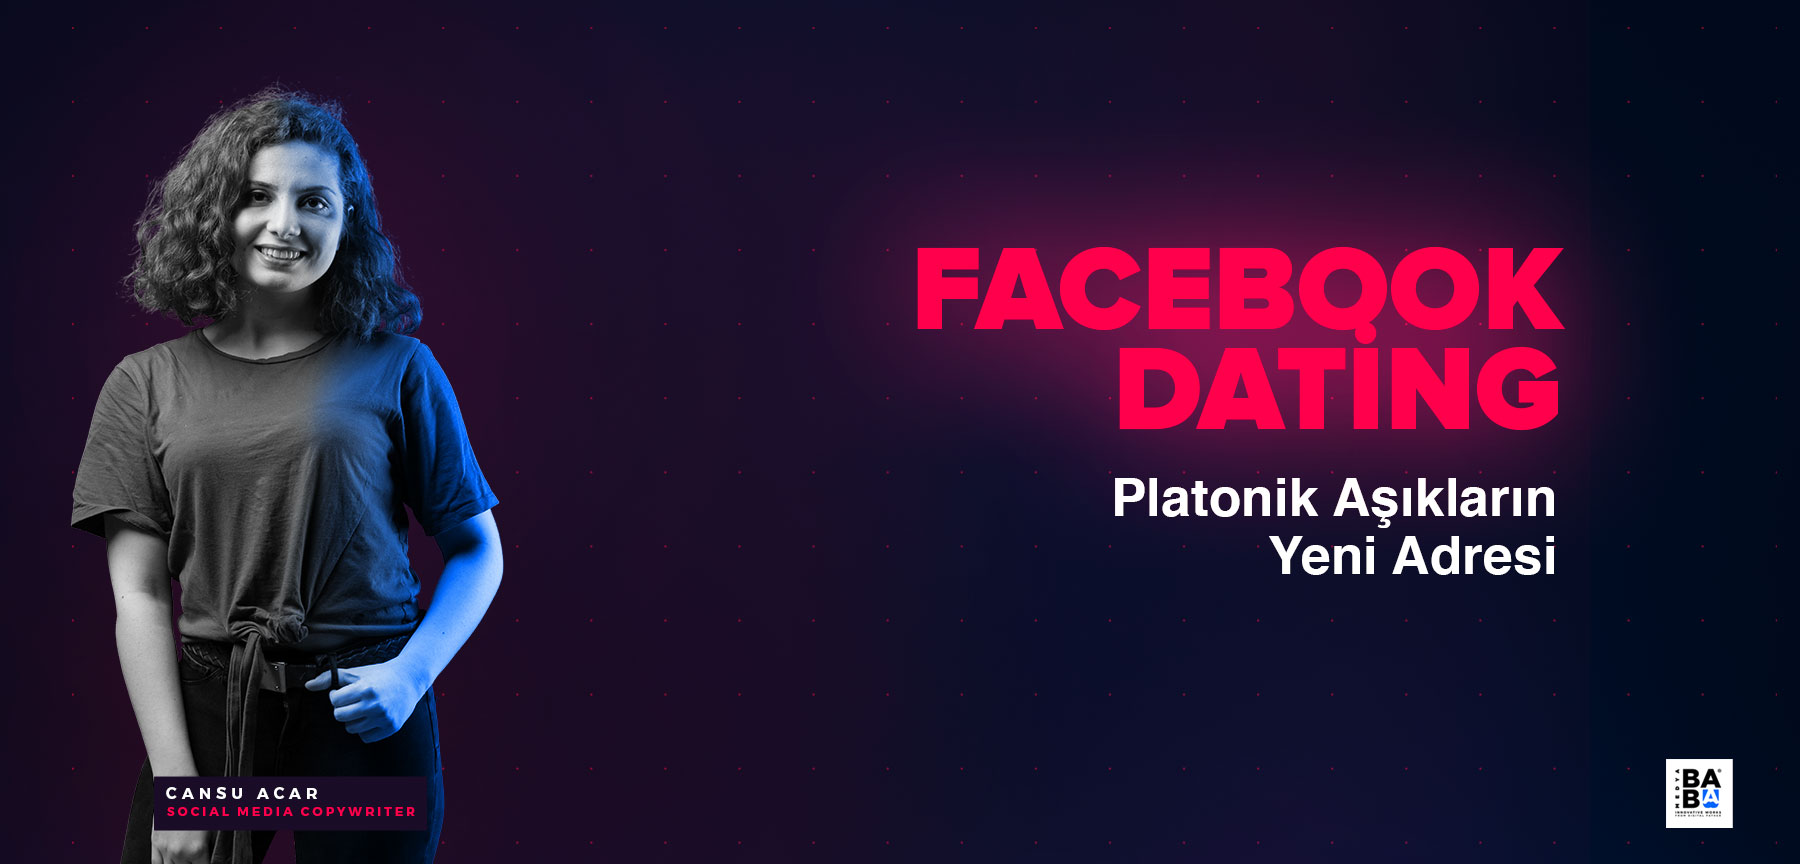 PLATONİK AŞIKLARIN YENİ ADRESİ: FACEBOOK DATİNG